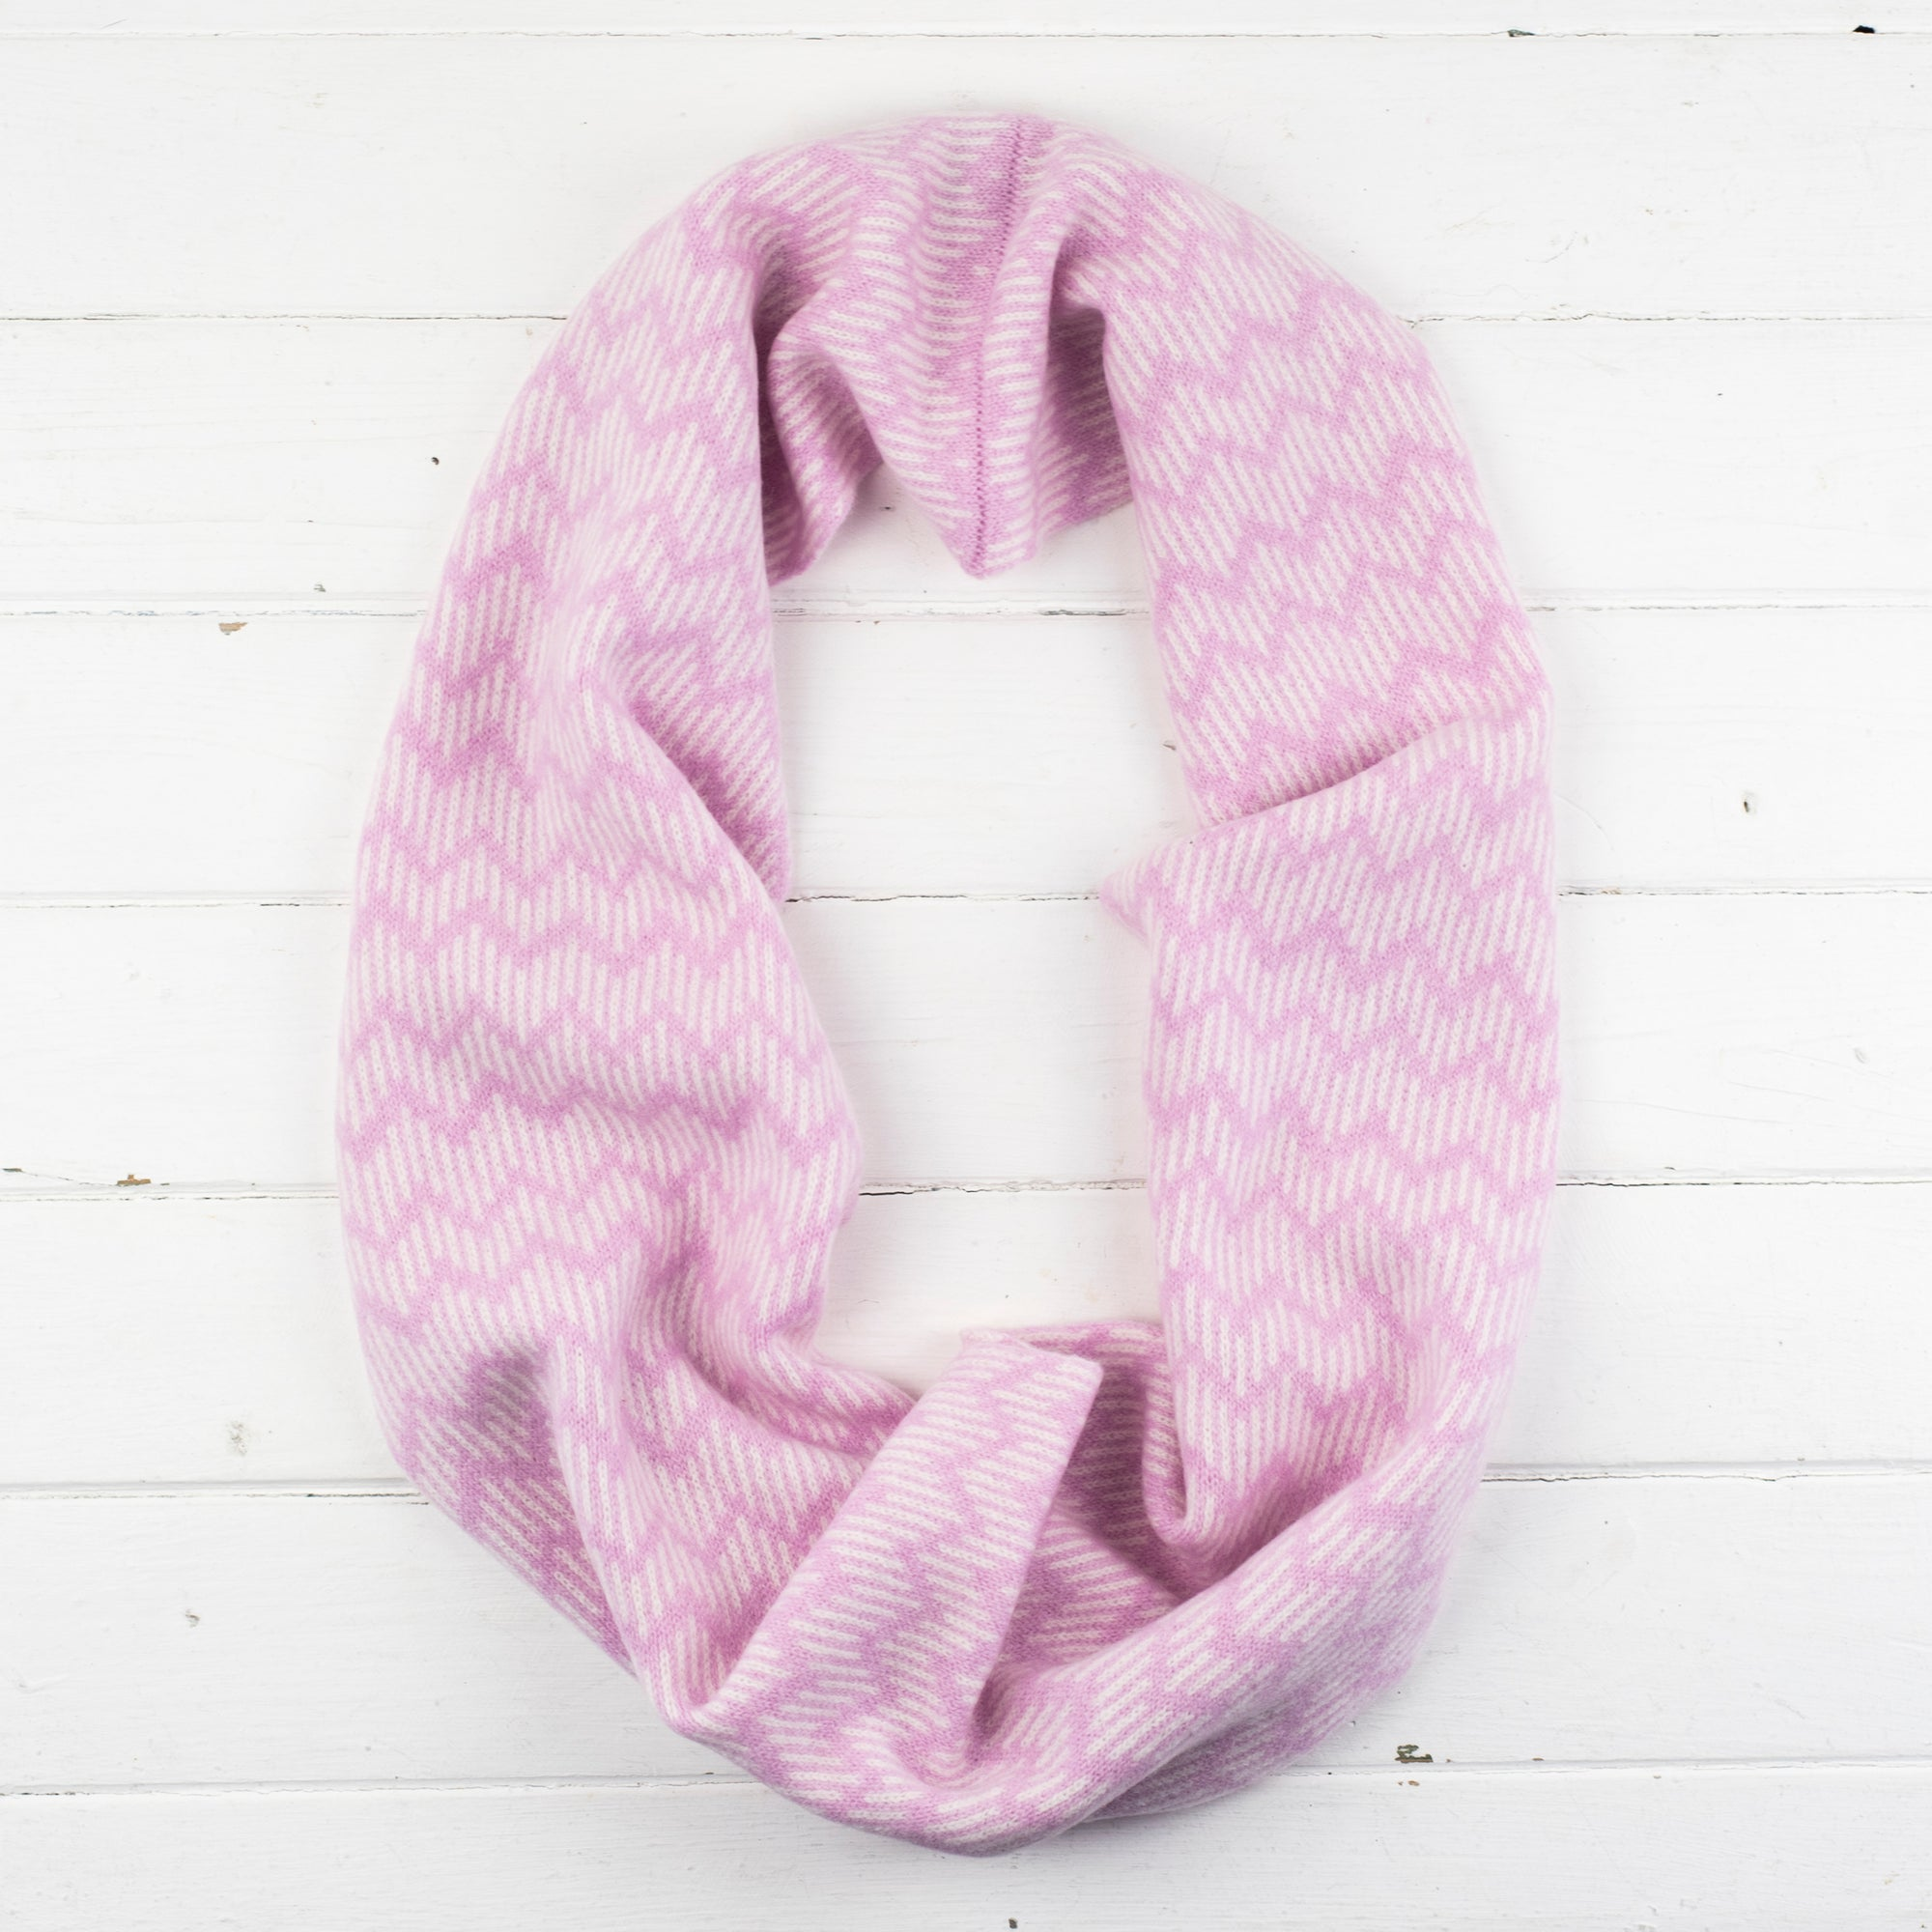 SAMPLE SALE Zig zag circle scarf - pink and white